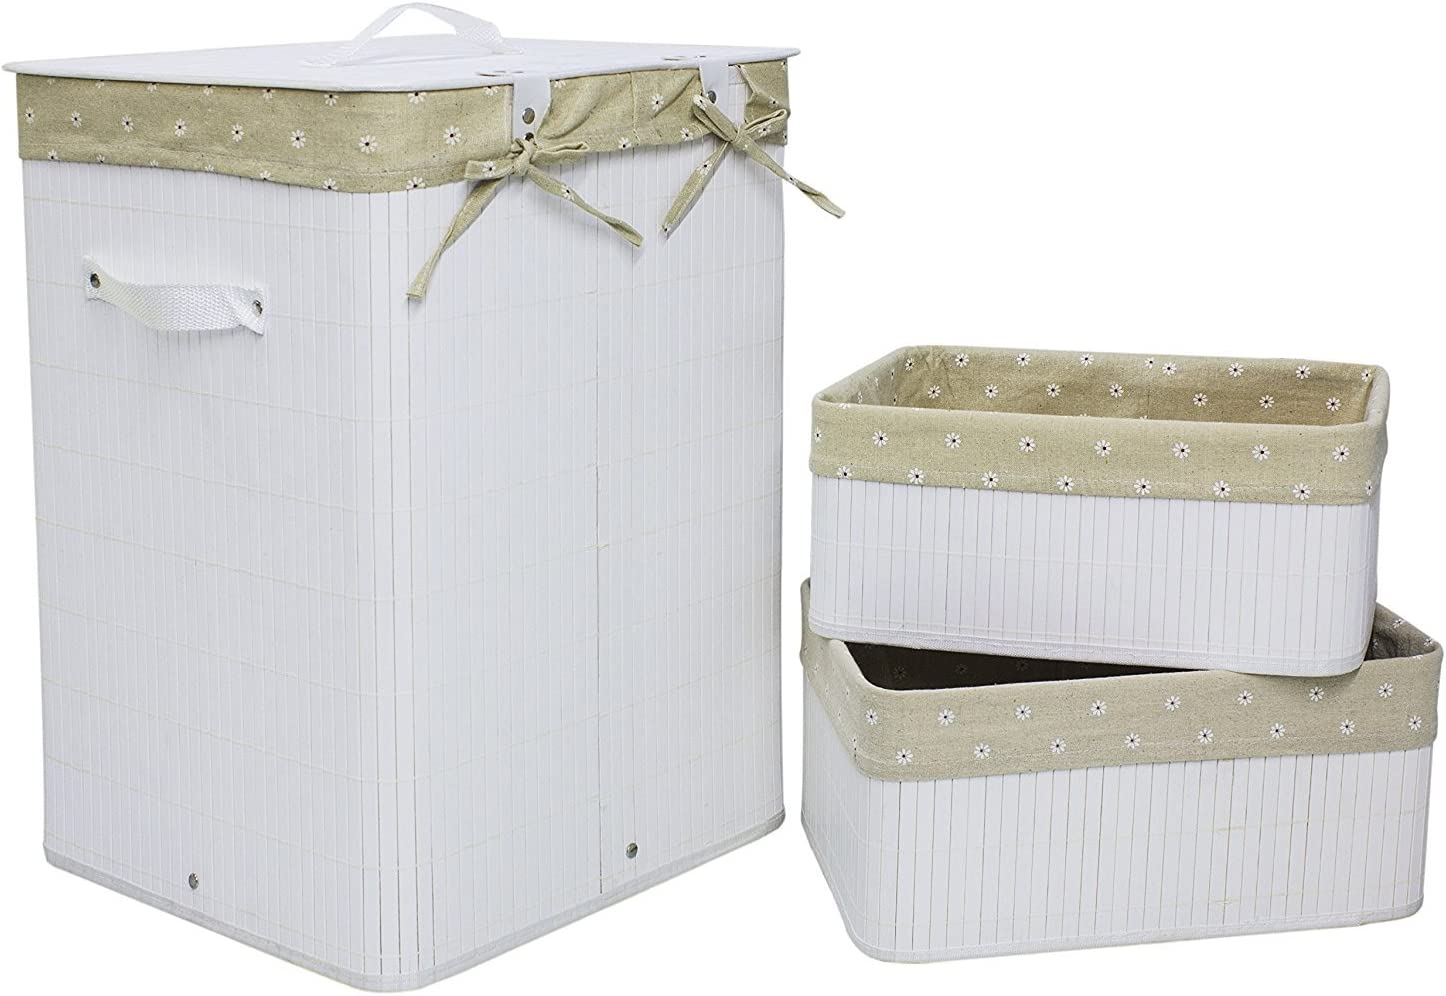 Set of 3 Laundry Hampers Bamboo Square Wicker Clothes Bin Baskets Storage Bin Organizers Retail Dump Bin 100209